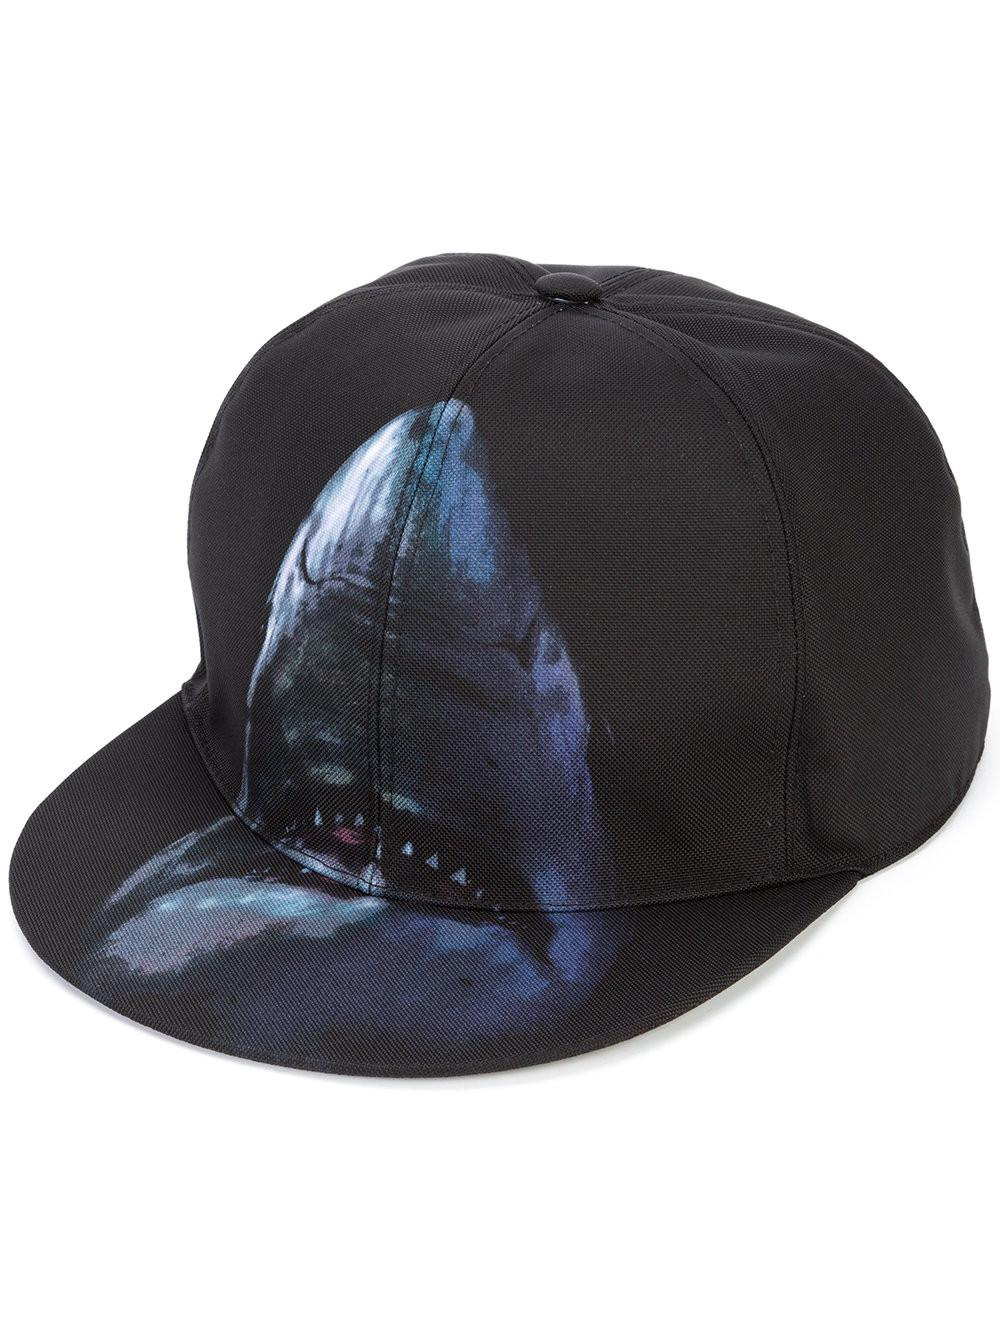 9ab34d3a918 Givenchy Shark Print Cap for Men - Lyst